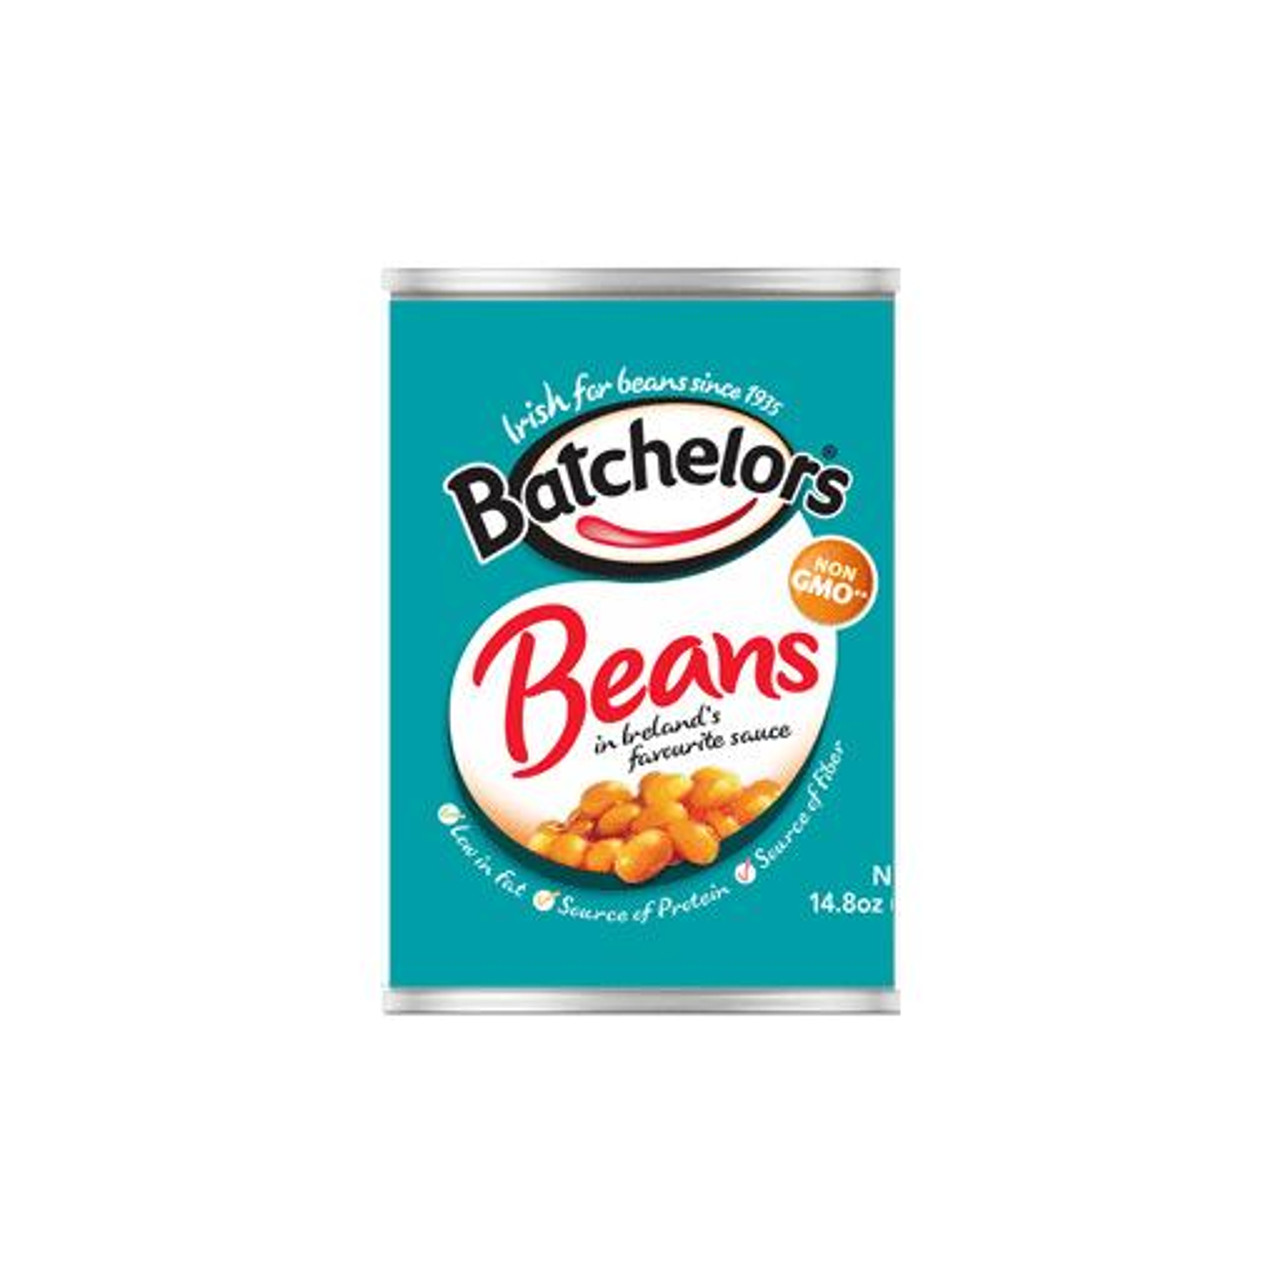 Batchelors - Baked Beans, 14.8oz